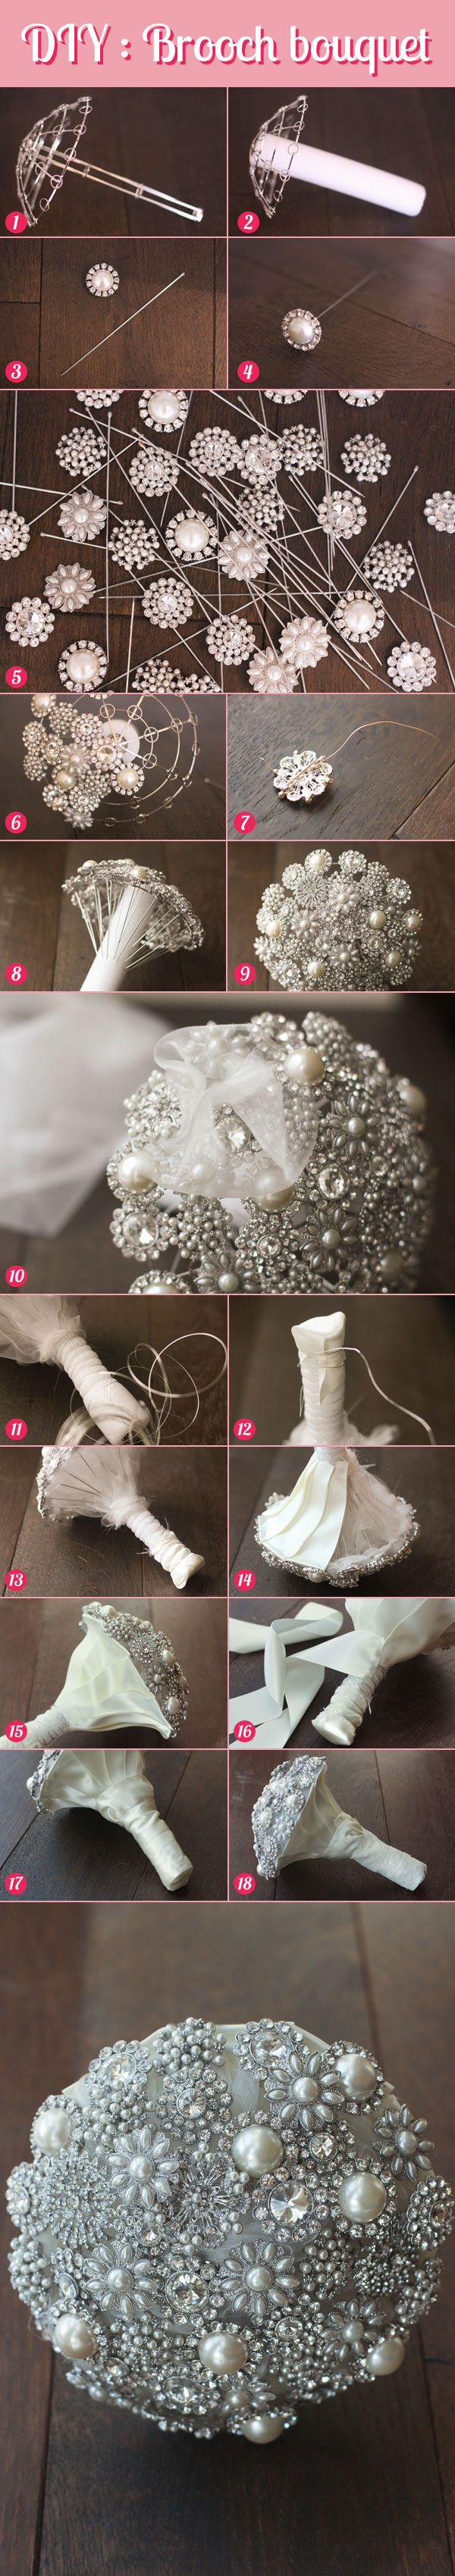 Wedding DIY : Brooch bouquet #tutorial   For Bridesmaids